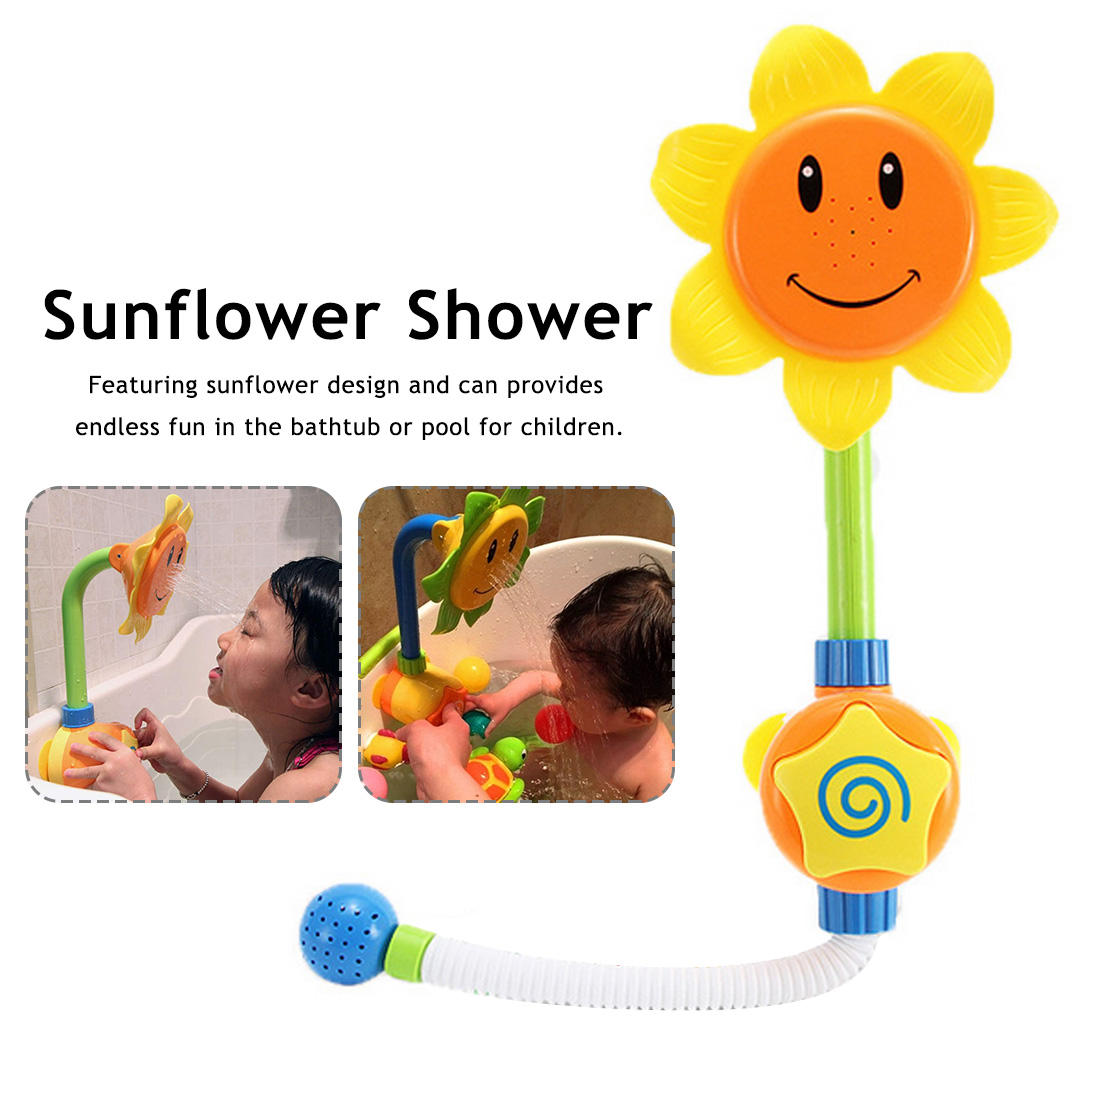 Bathing Tub Sunflower Shower Faucet Spray Water Swimming Bathroom Bath Toys For Children Baby Funny Water Game Bath Toy